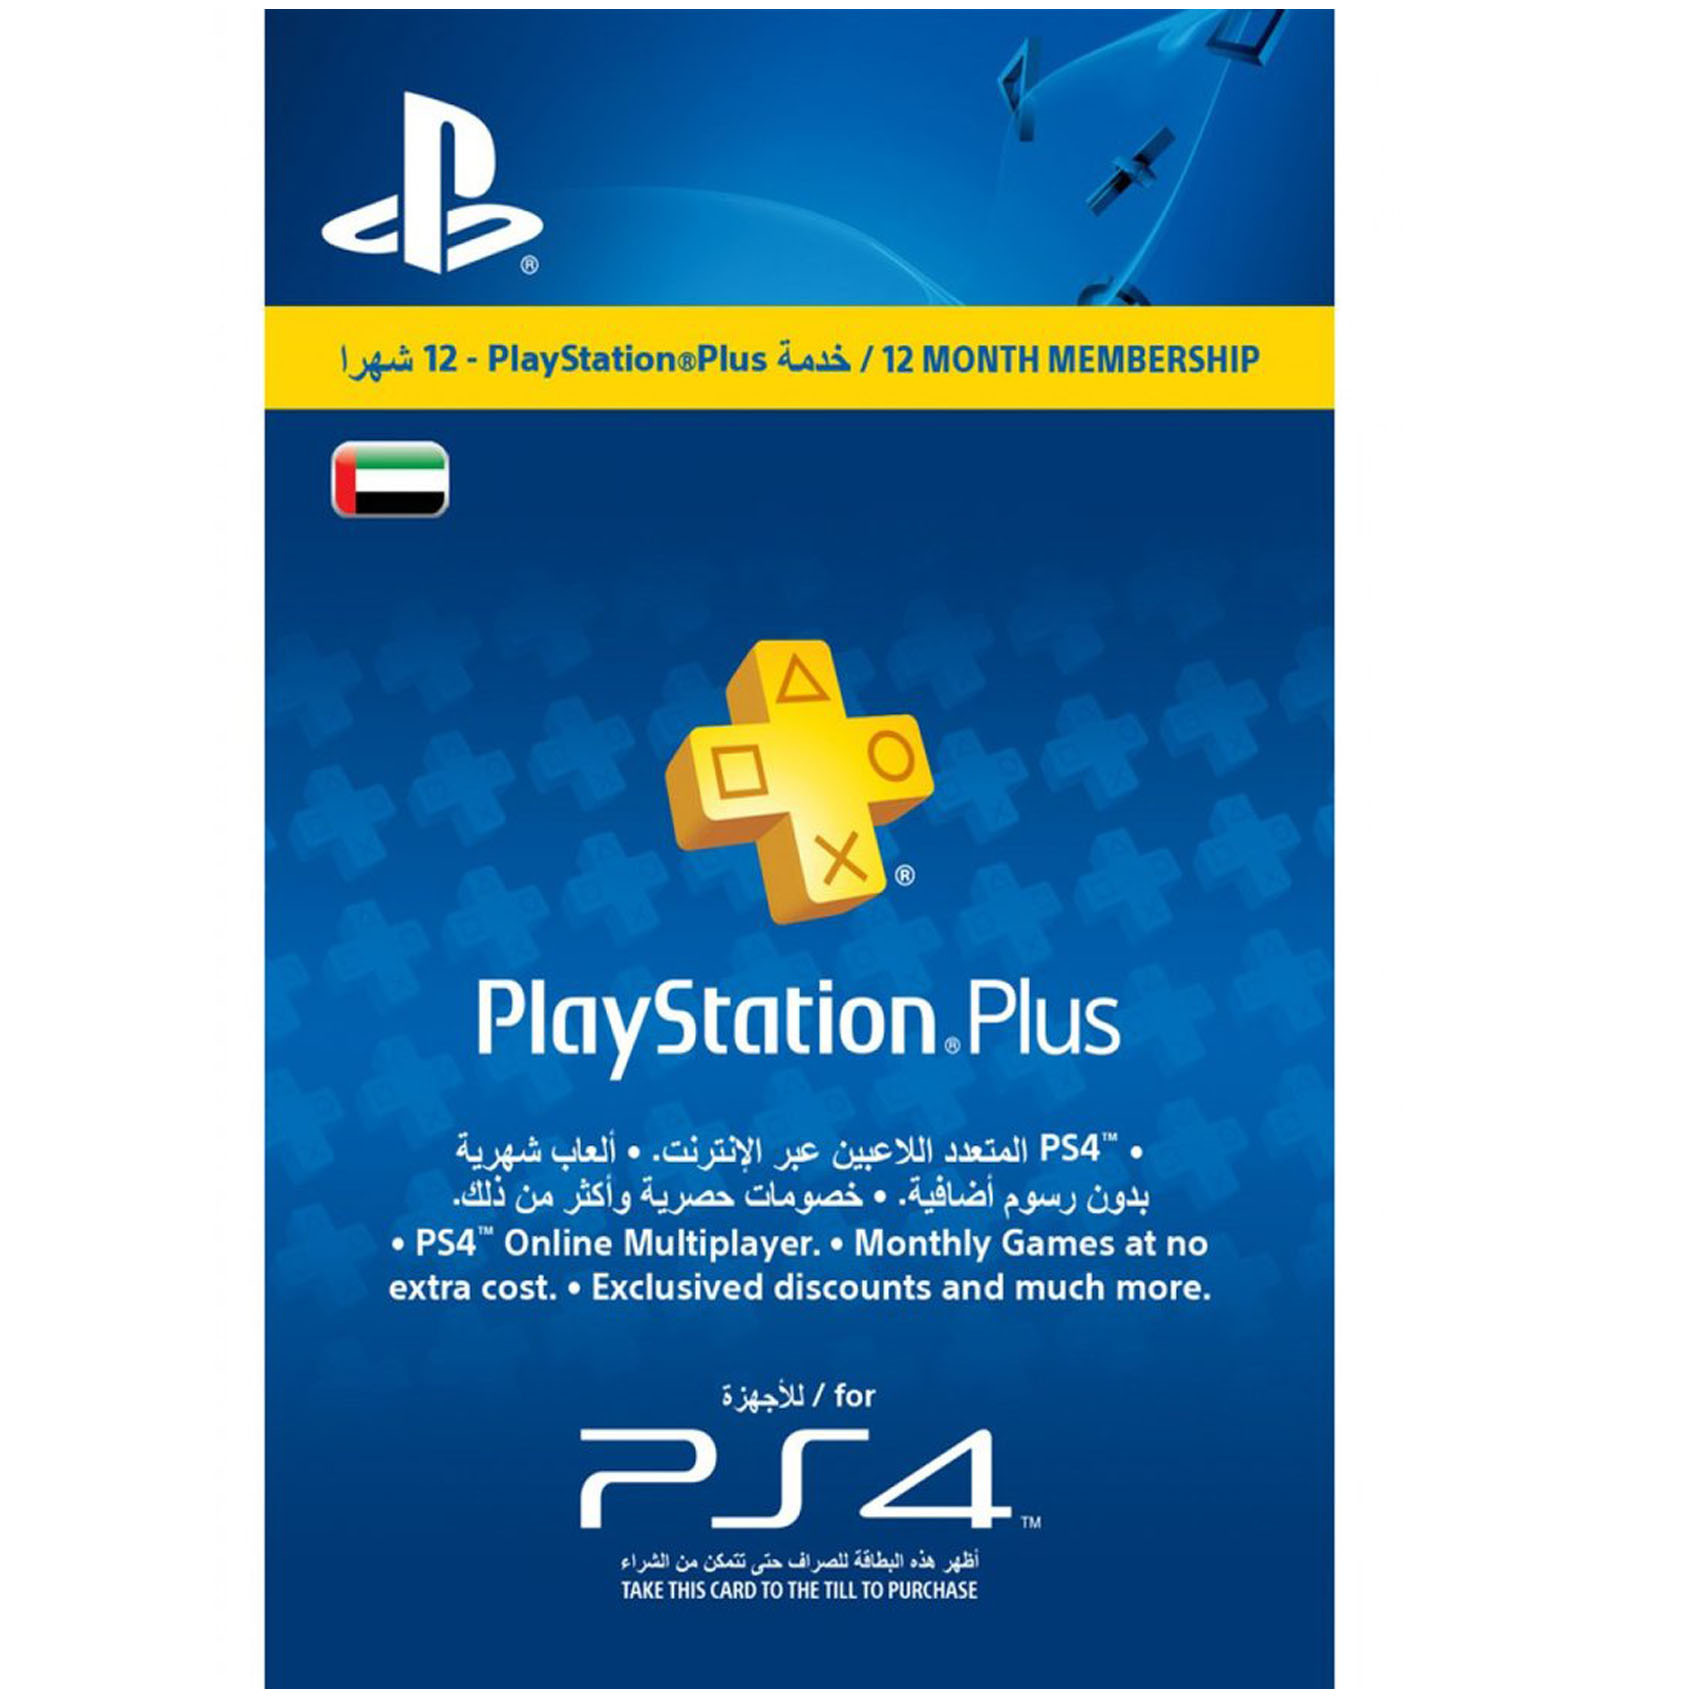 SONY PS PLUS 365 DAYS MBR CARD